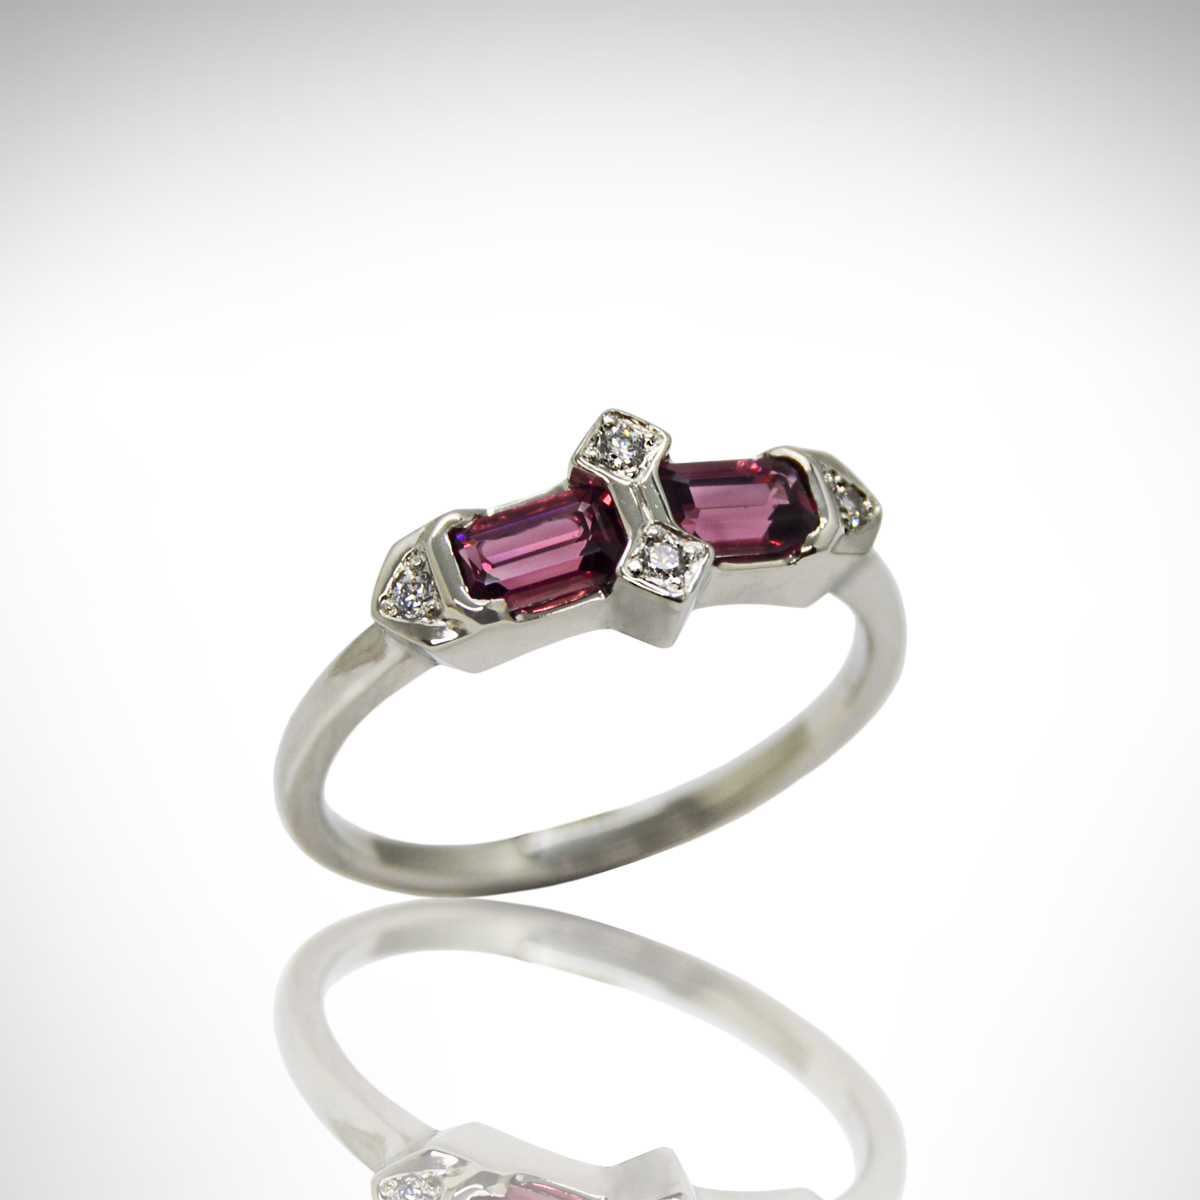 emerald-cut Rhodolite garnet set in art deco 14Kt white gold ring setting with diamonds